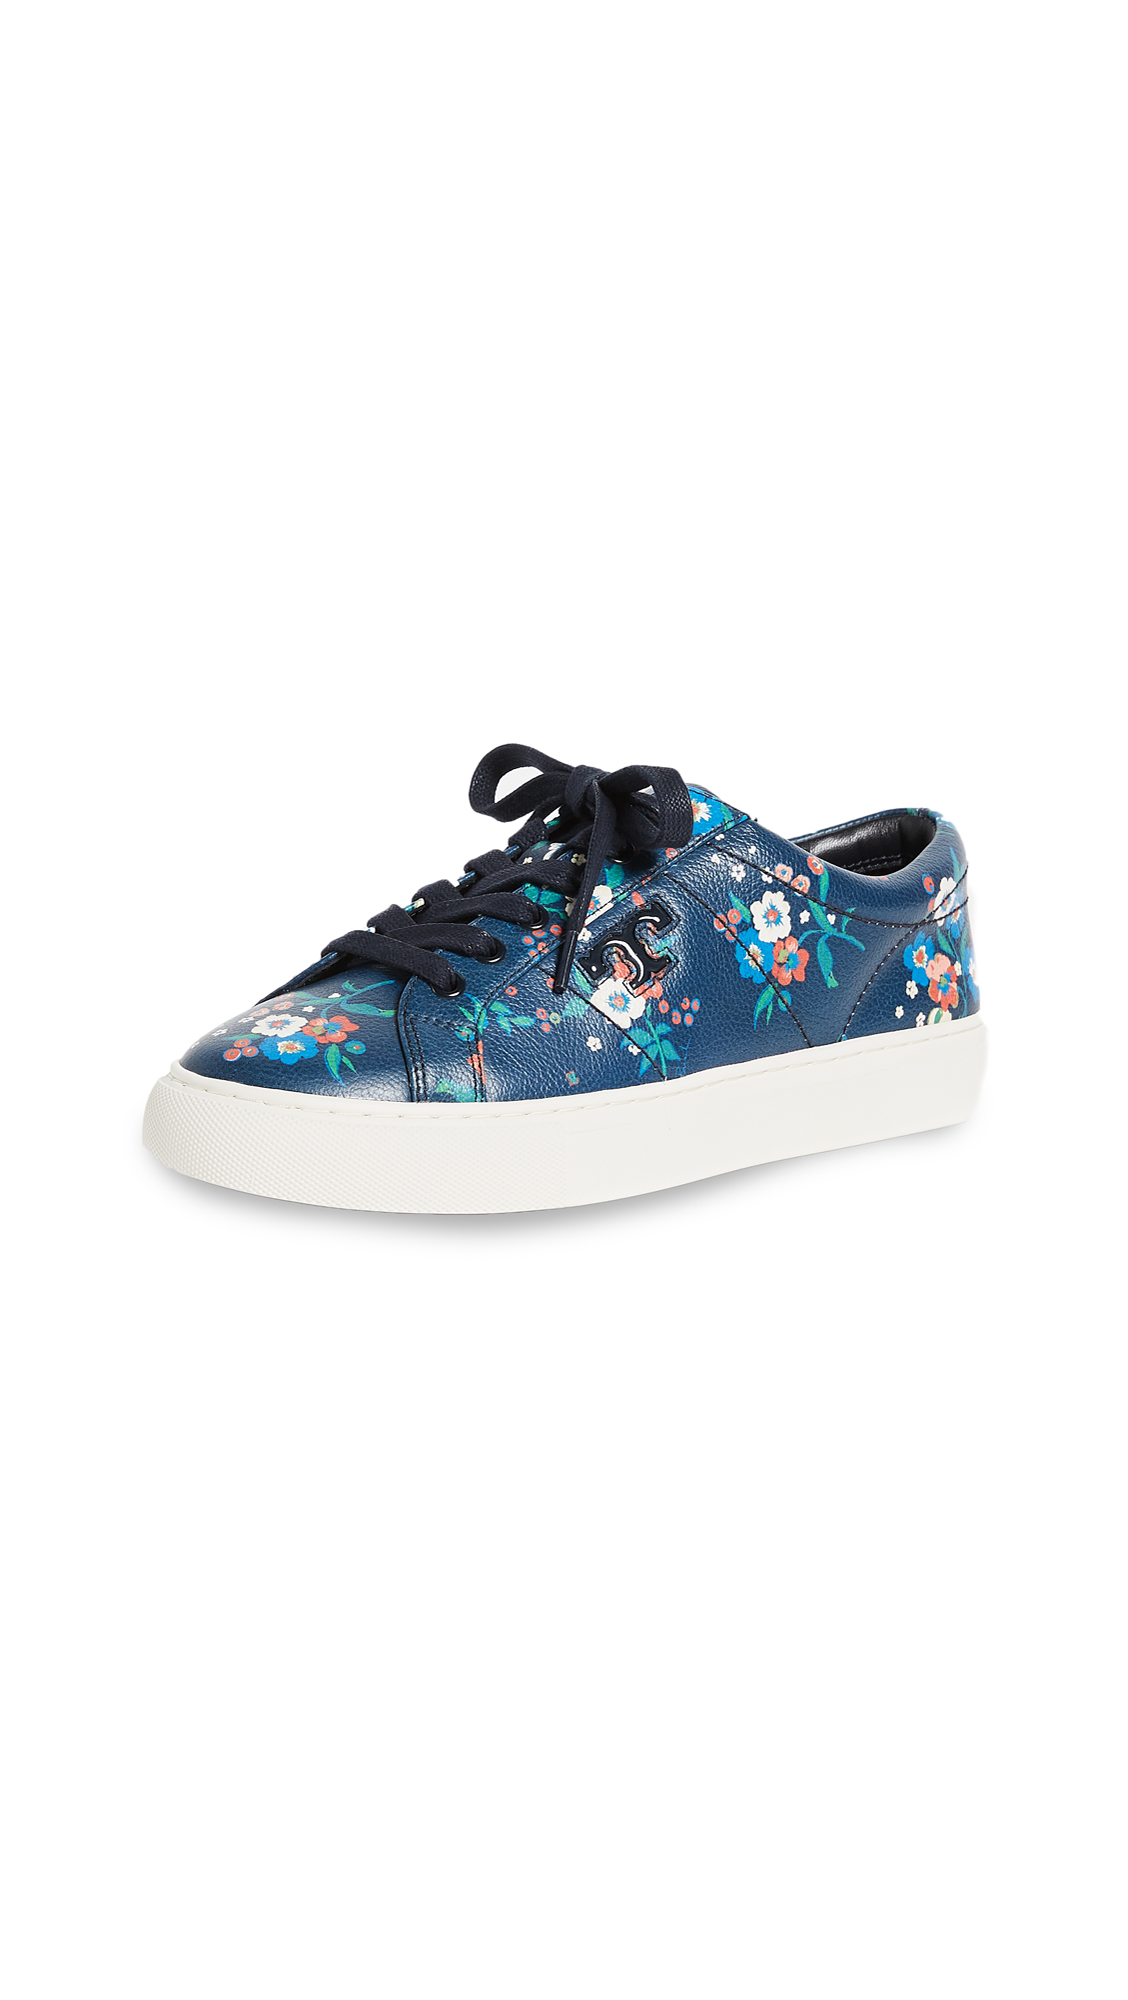 Tory Burch Amalia Sneakers - Pansy Bouquet